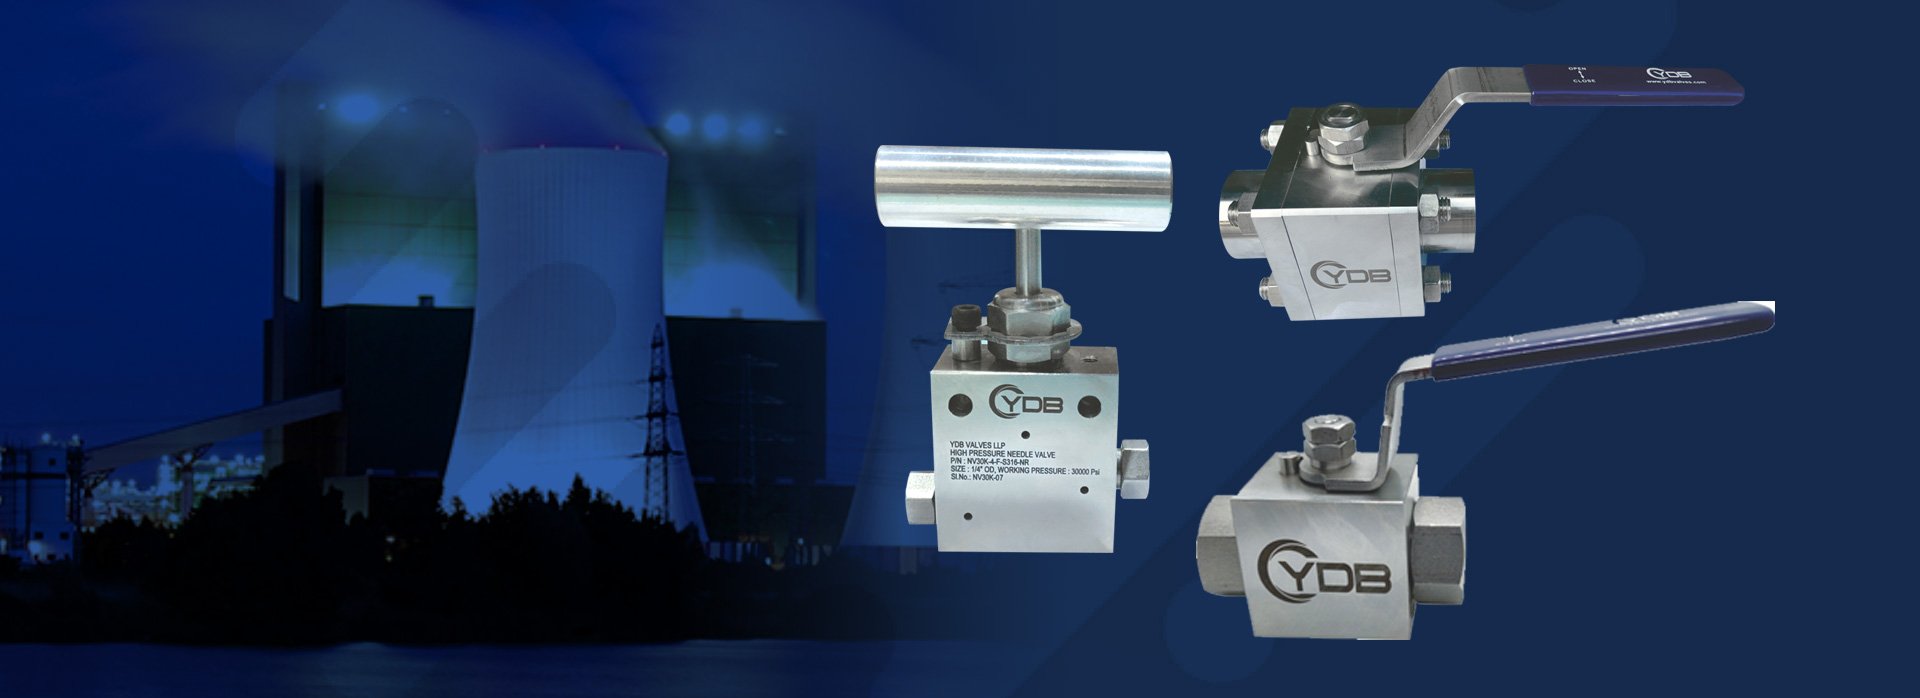 YDB LLP valves products: High Pressure Needle Valve, Forged Bolted Screwed Ball valves, Screwed Ball Valves